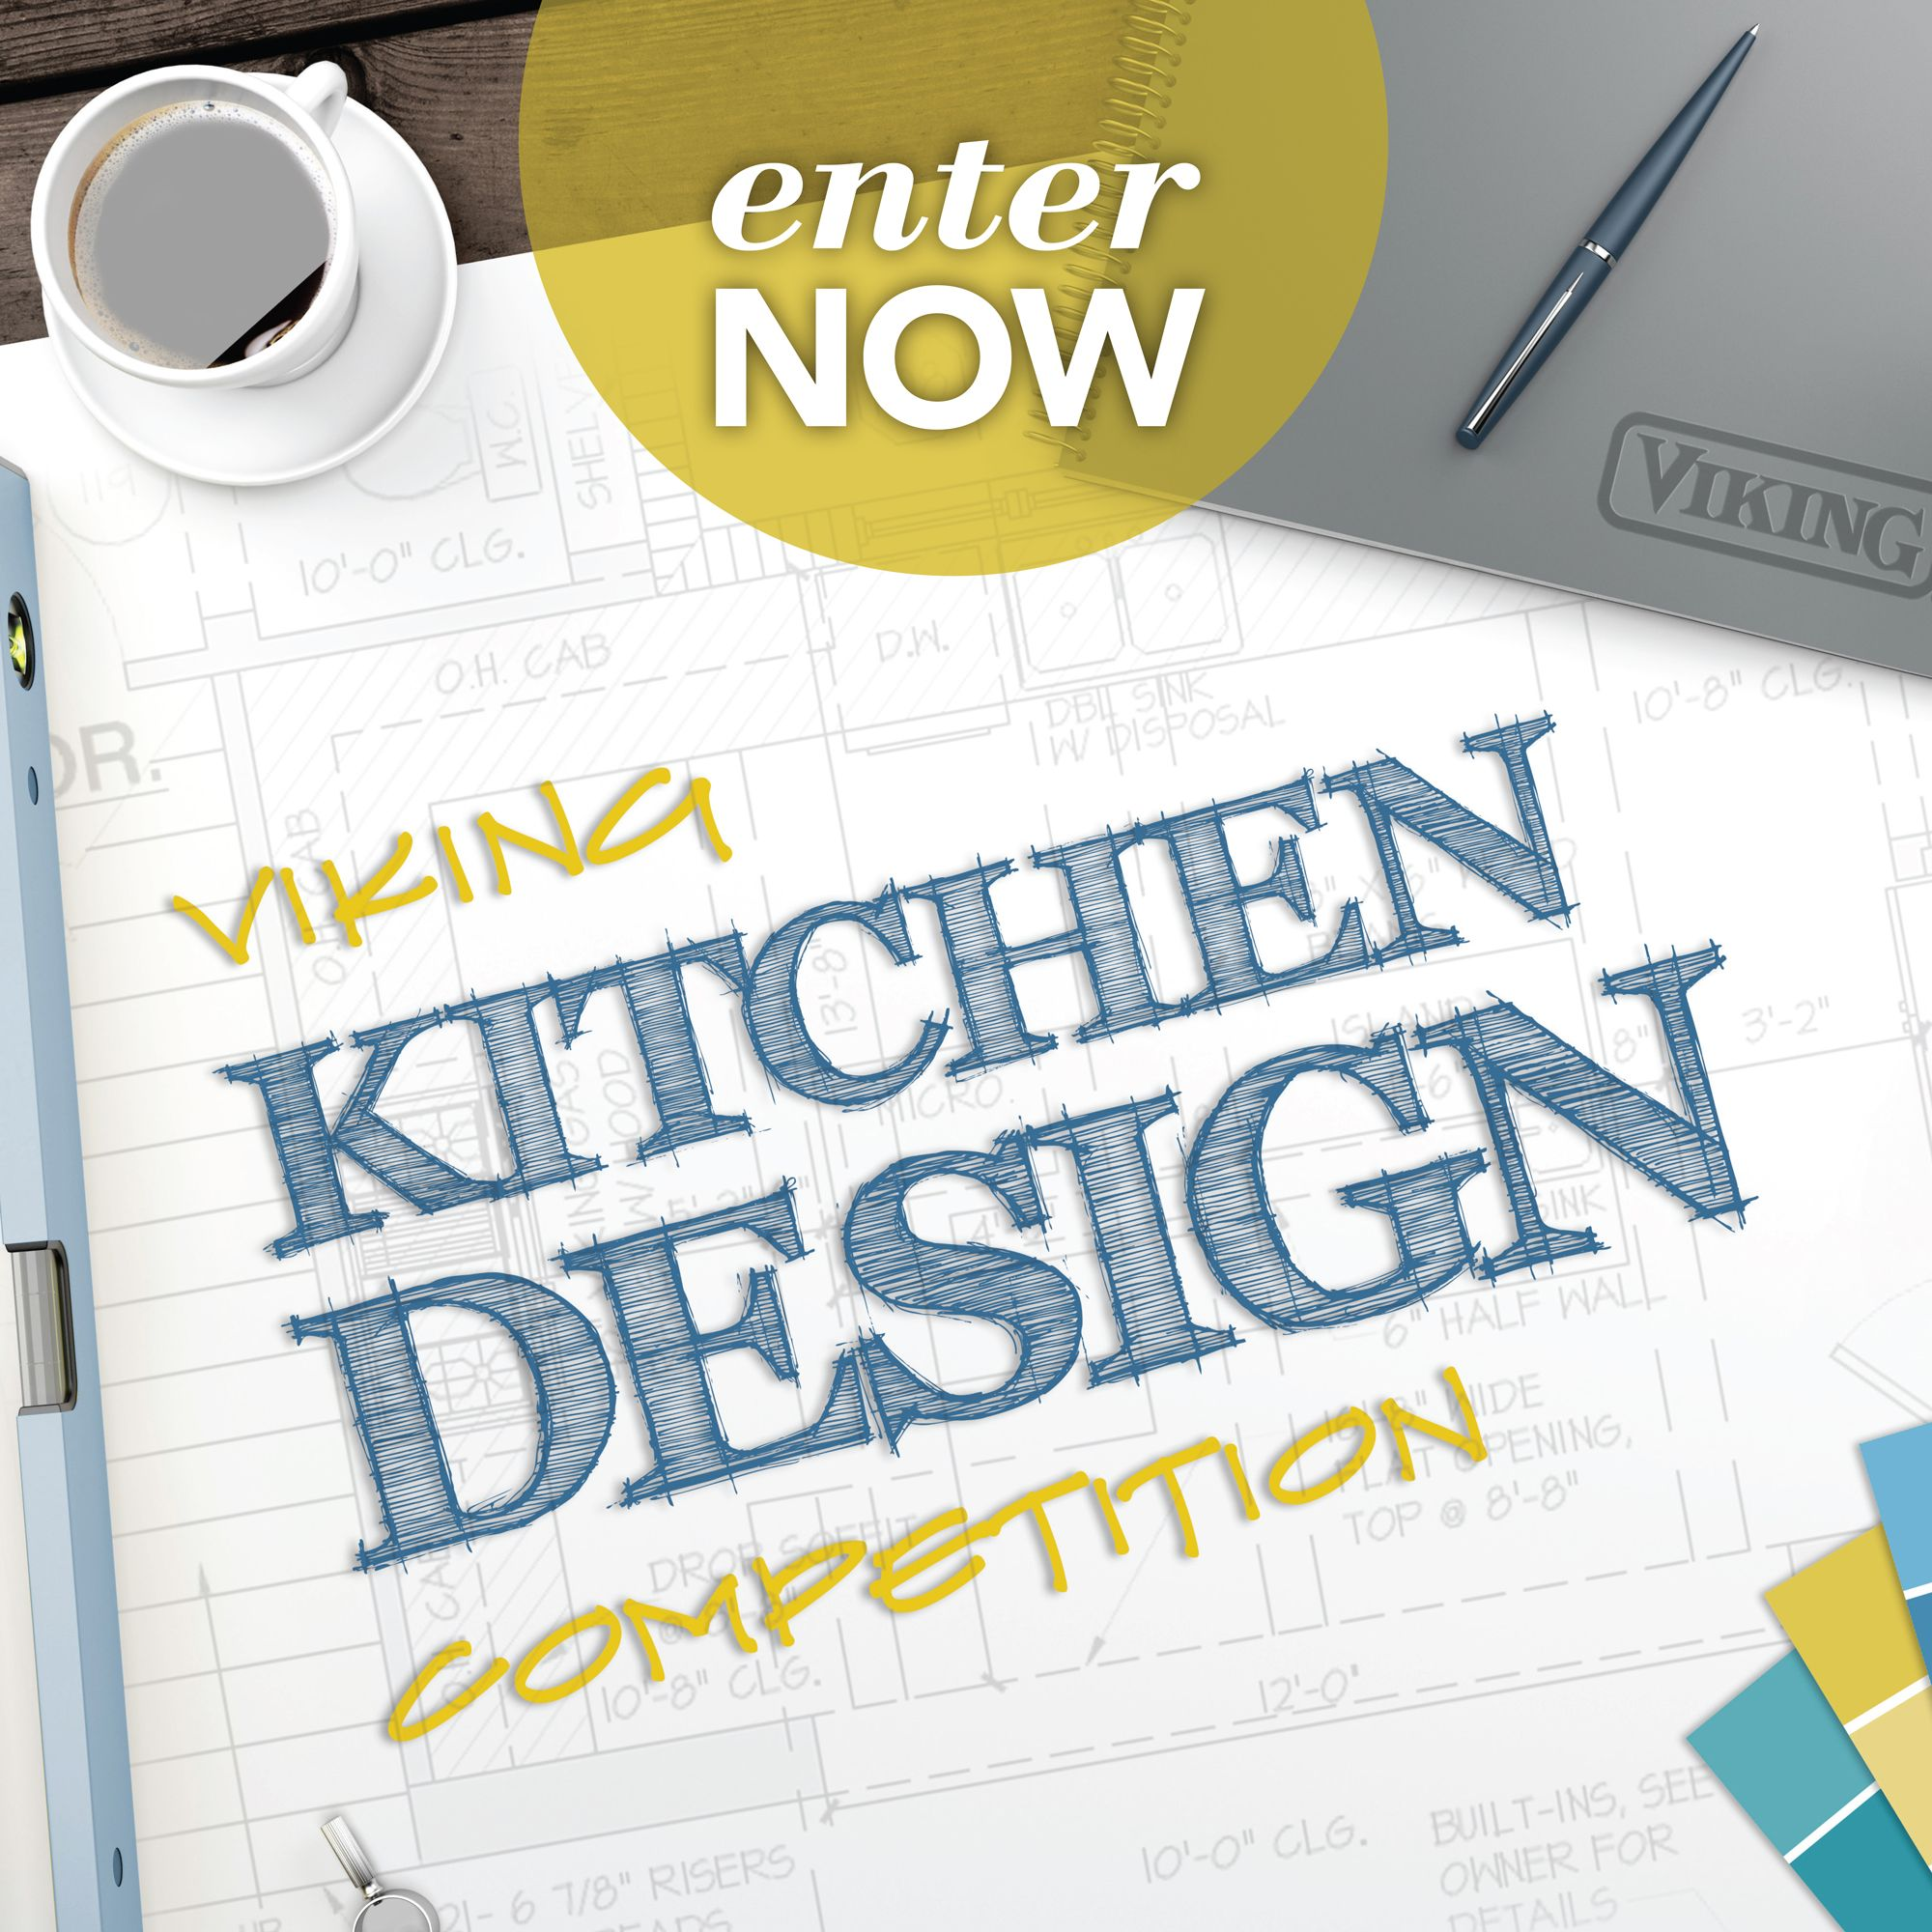 Viking Kitchen Design Contest at PACIFIC KITCHEN & HOME inside BEST BUY - Costa Mesa Costa Mesa CA